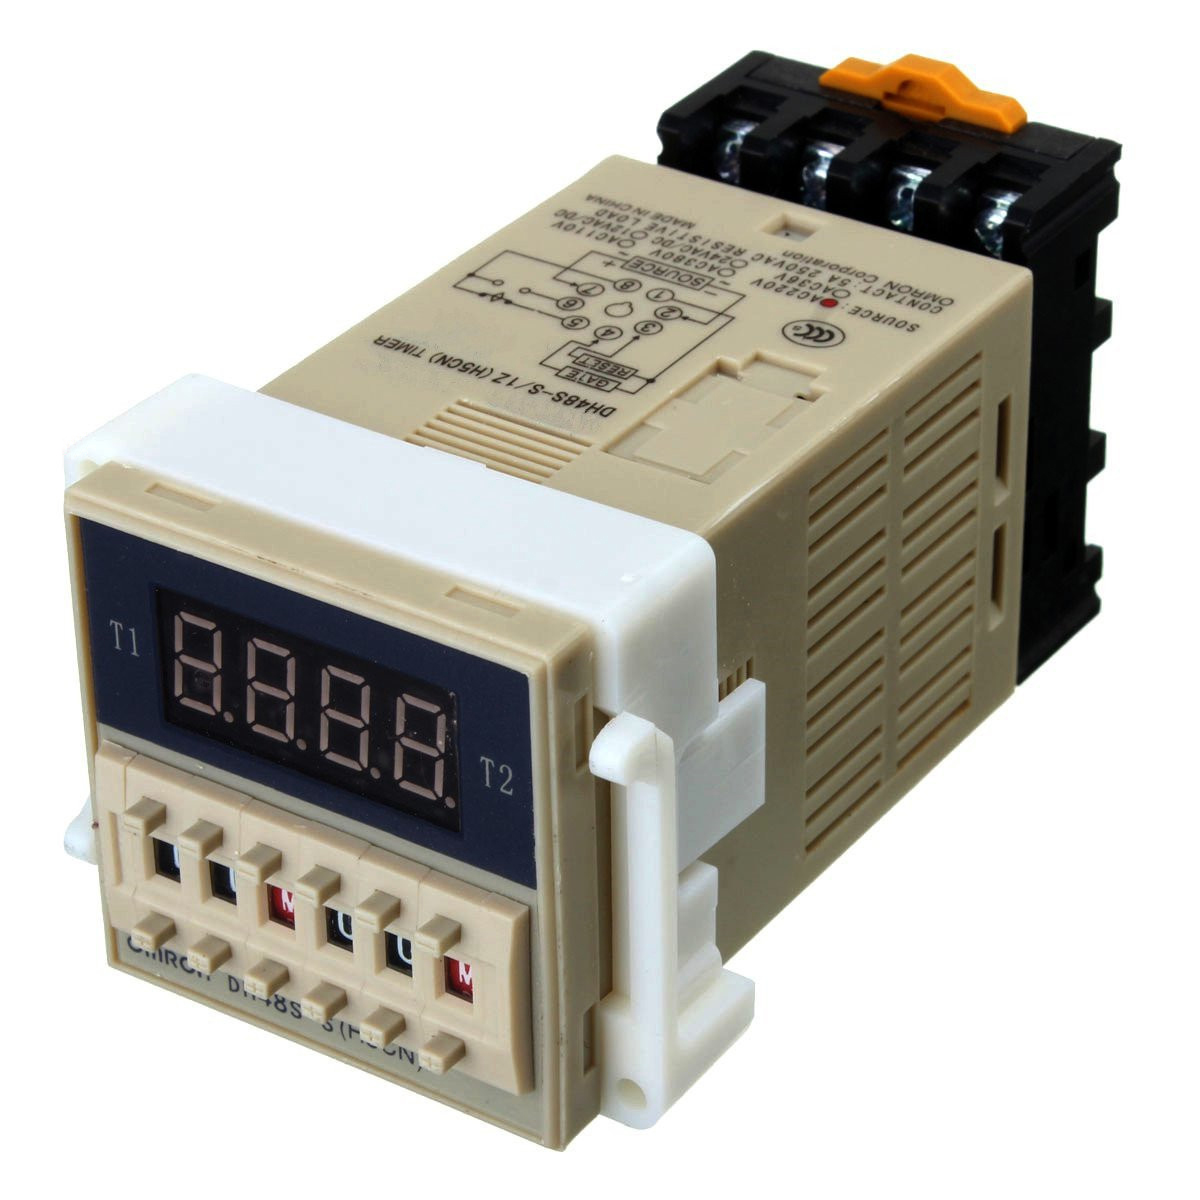 THGS AC 220V 5A Programmable Double Time Timer Delay Relay Device Tool DH48S-S zys48 s dh48s s ac 220v repeat cycle dpdt time delay relay timer counter with socket base 220vac